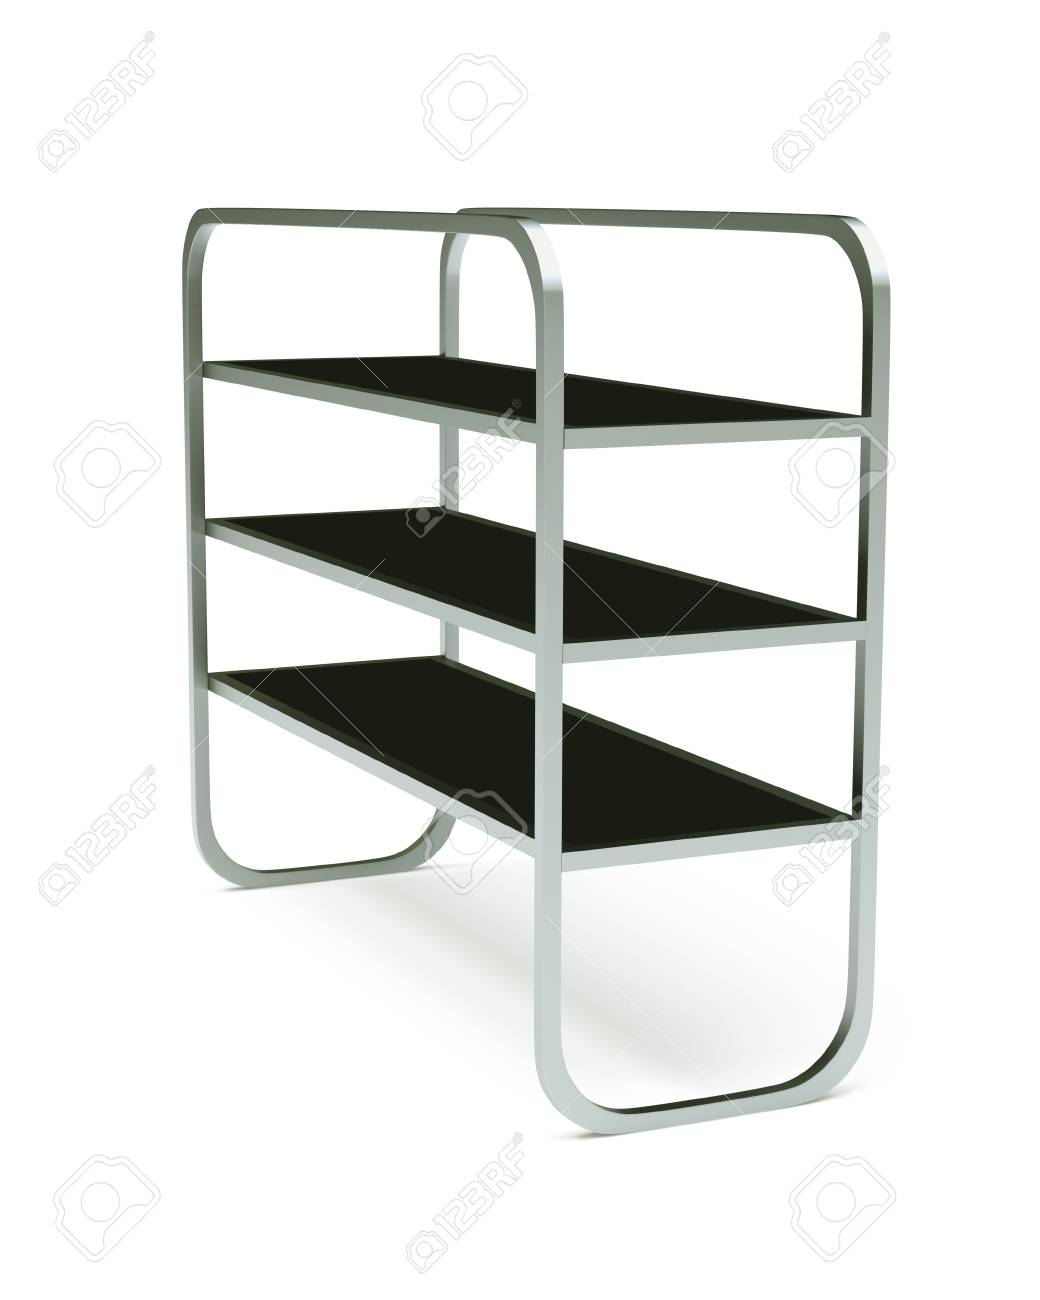 3D shelves and shelf on a white background  Isolated Stock Photo - 14932081